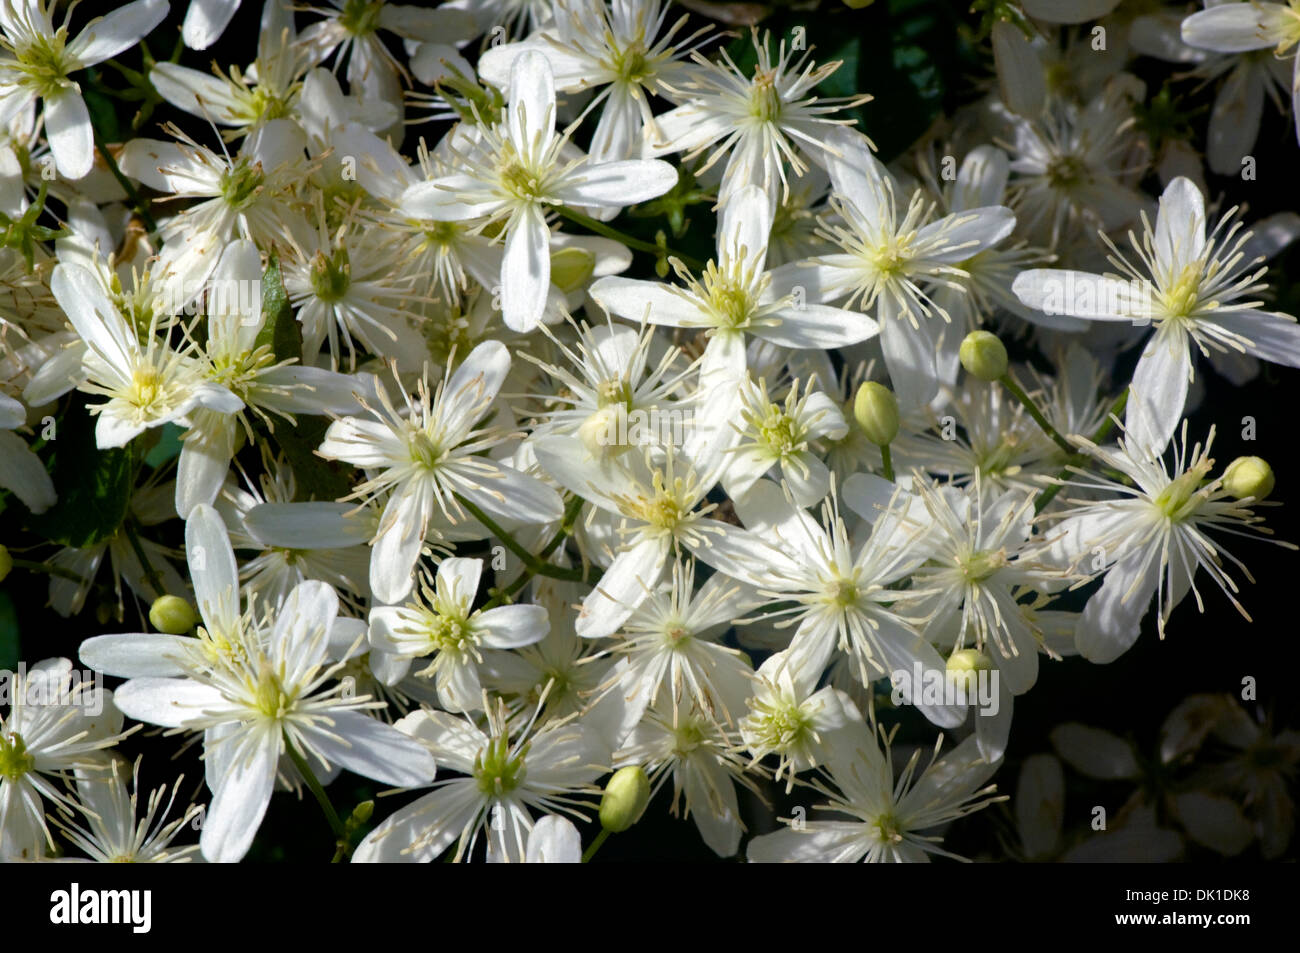 Many Small White Clematis Flowers On The Vine Wrapped Around A Fence